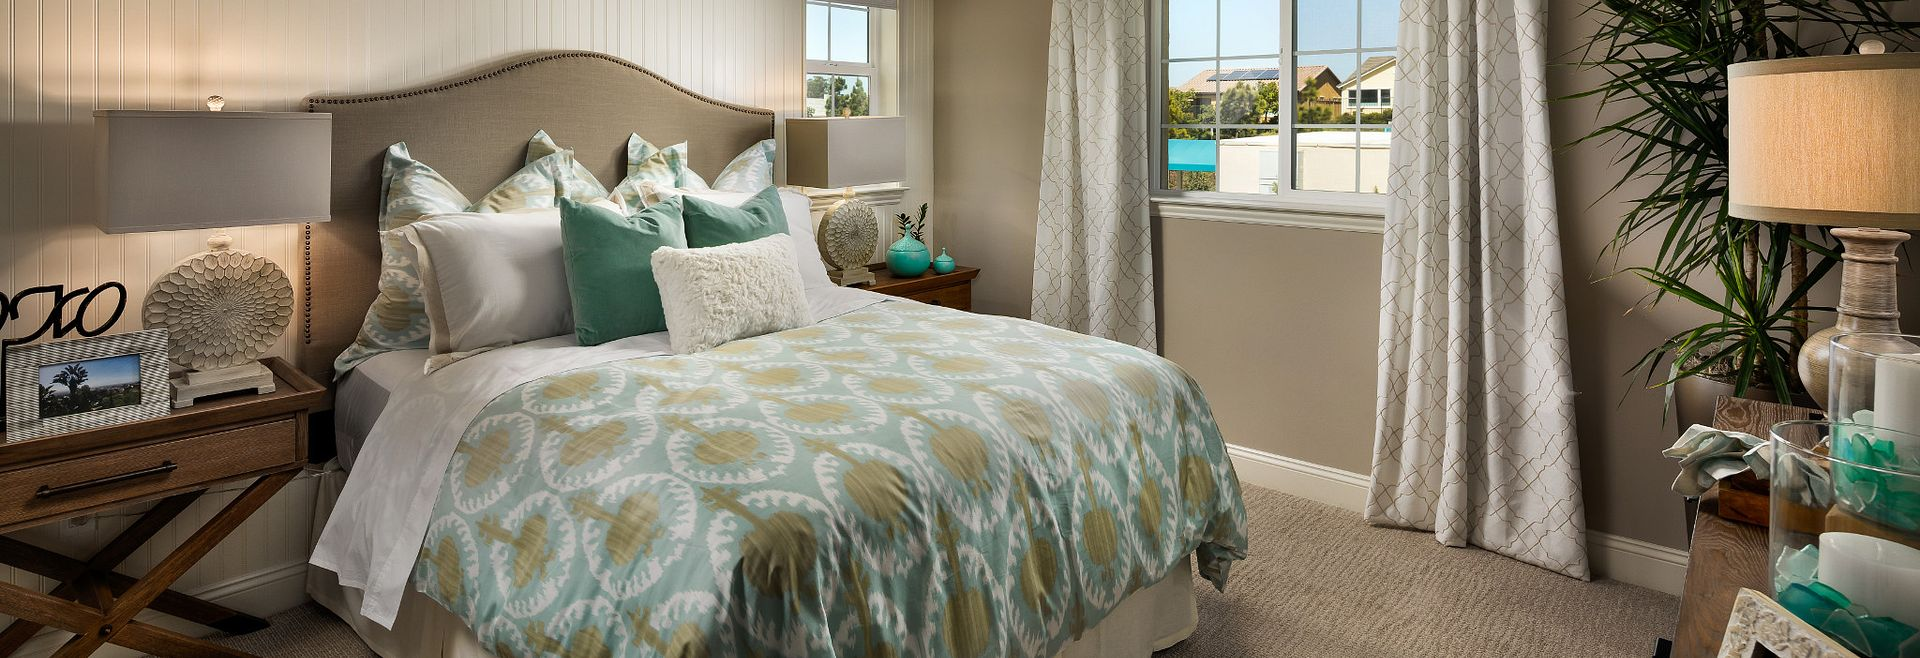 Shea Homes Rice Ranch Acacia+ Guest Bedroom